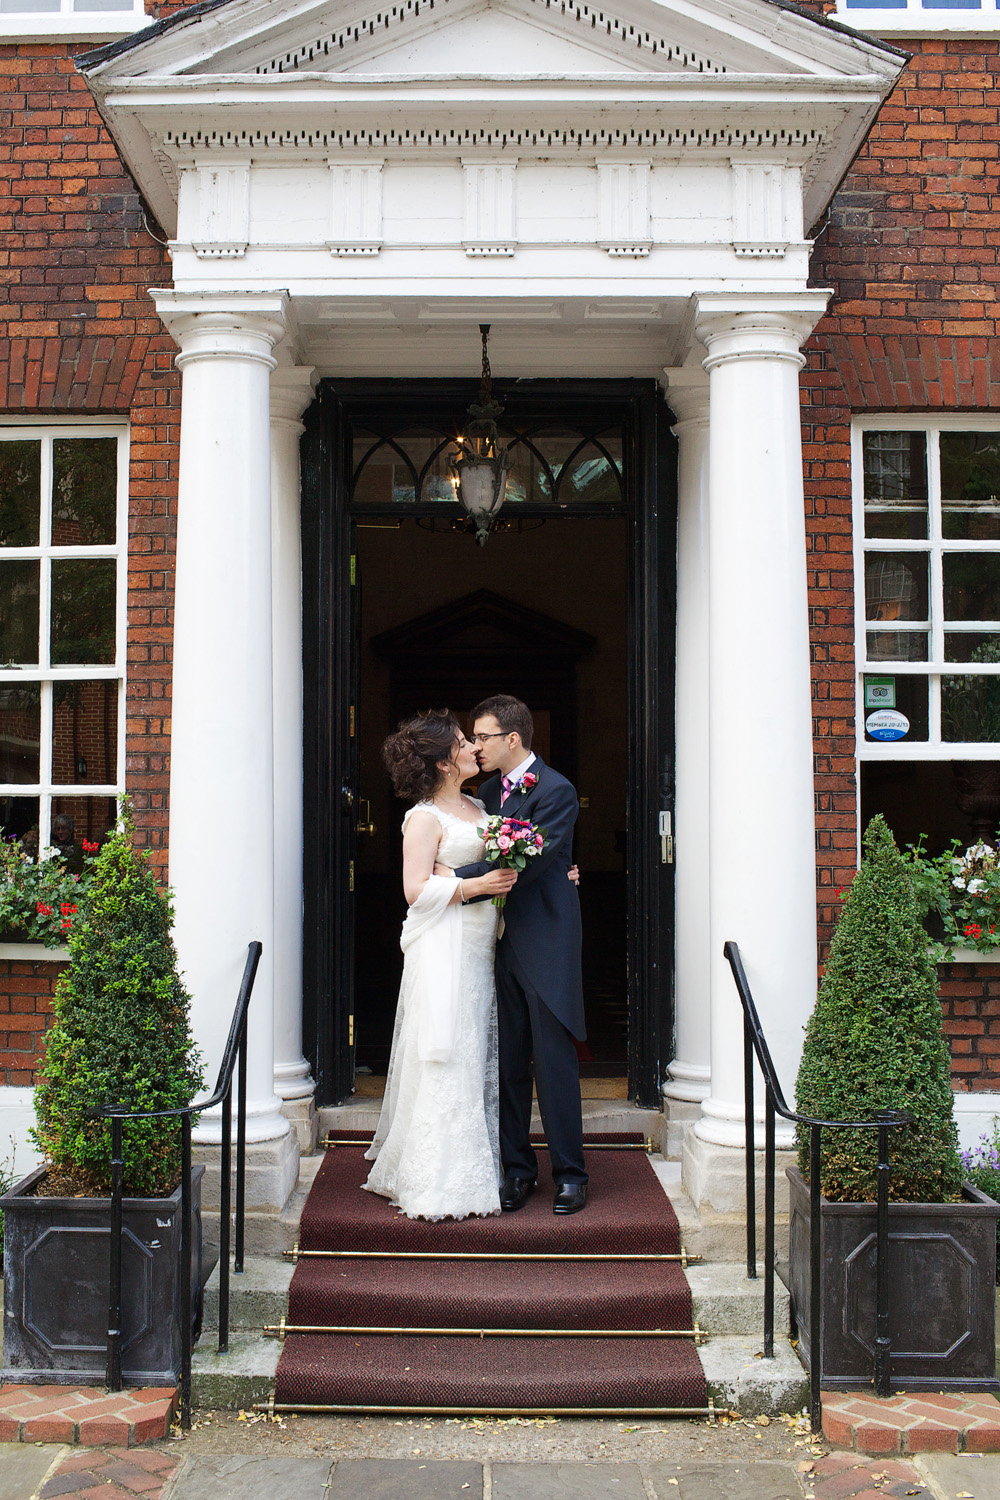 Sir_Christopher_Wren_Hotel_Wedding_Photographer_Windsor_009.jpg